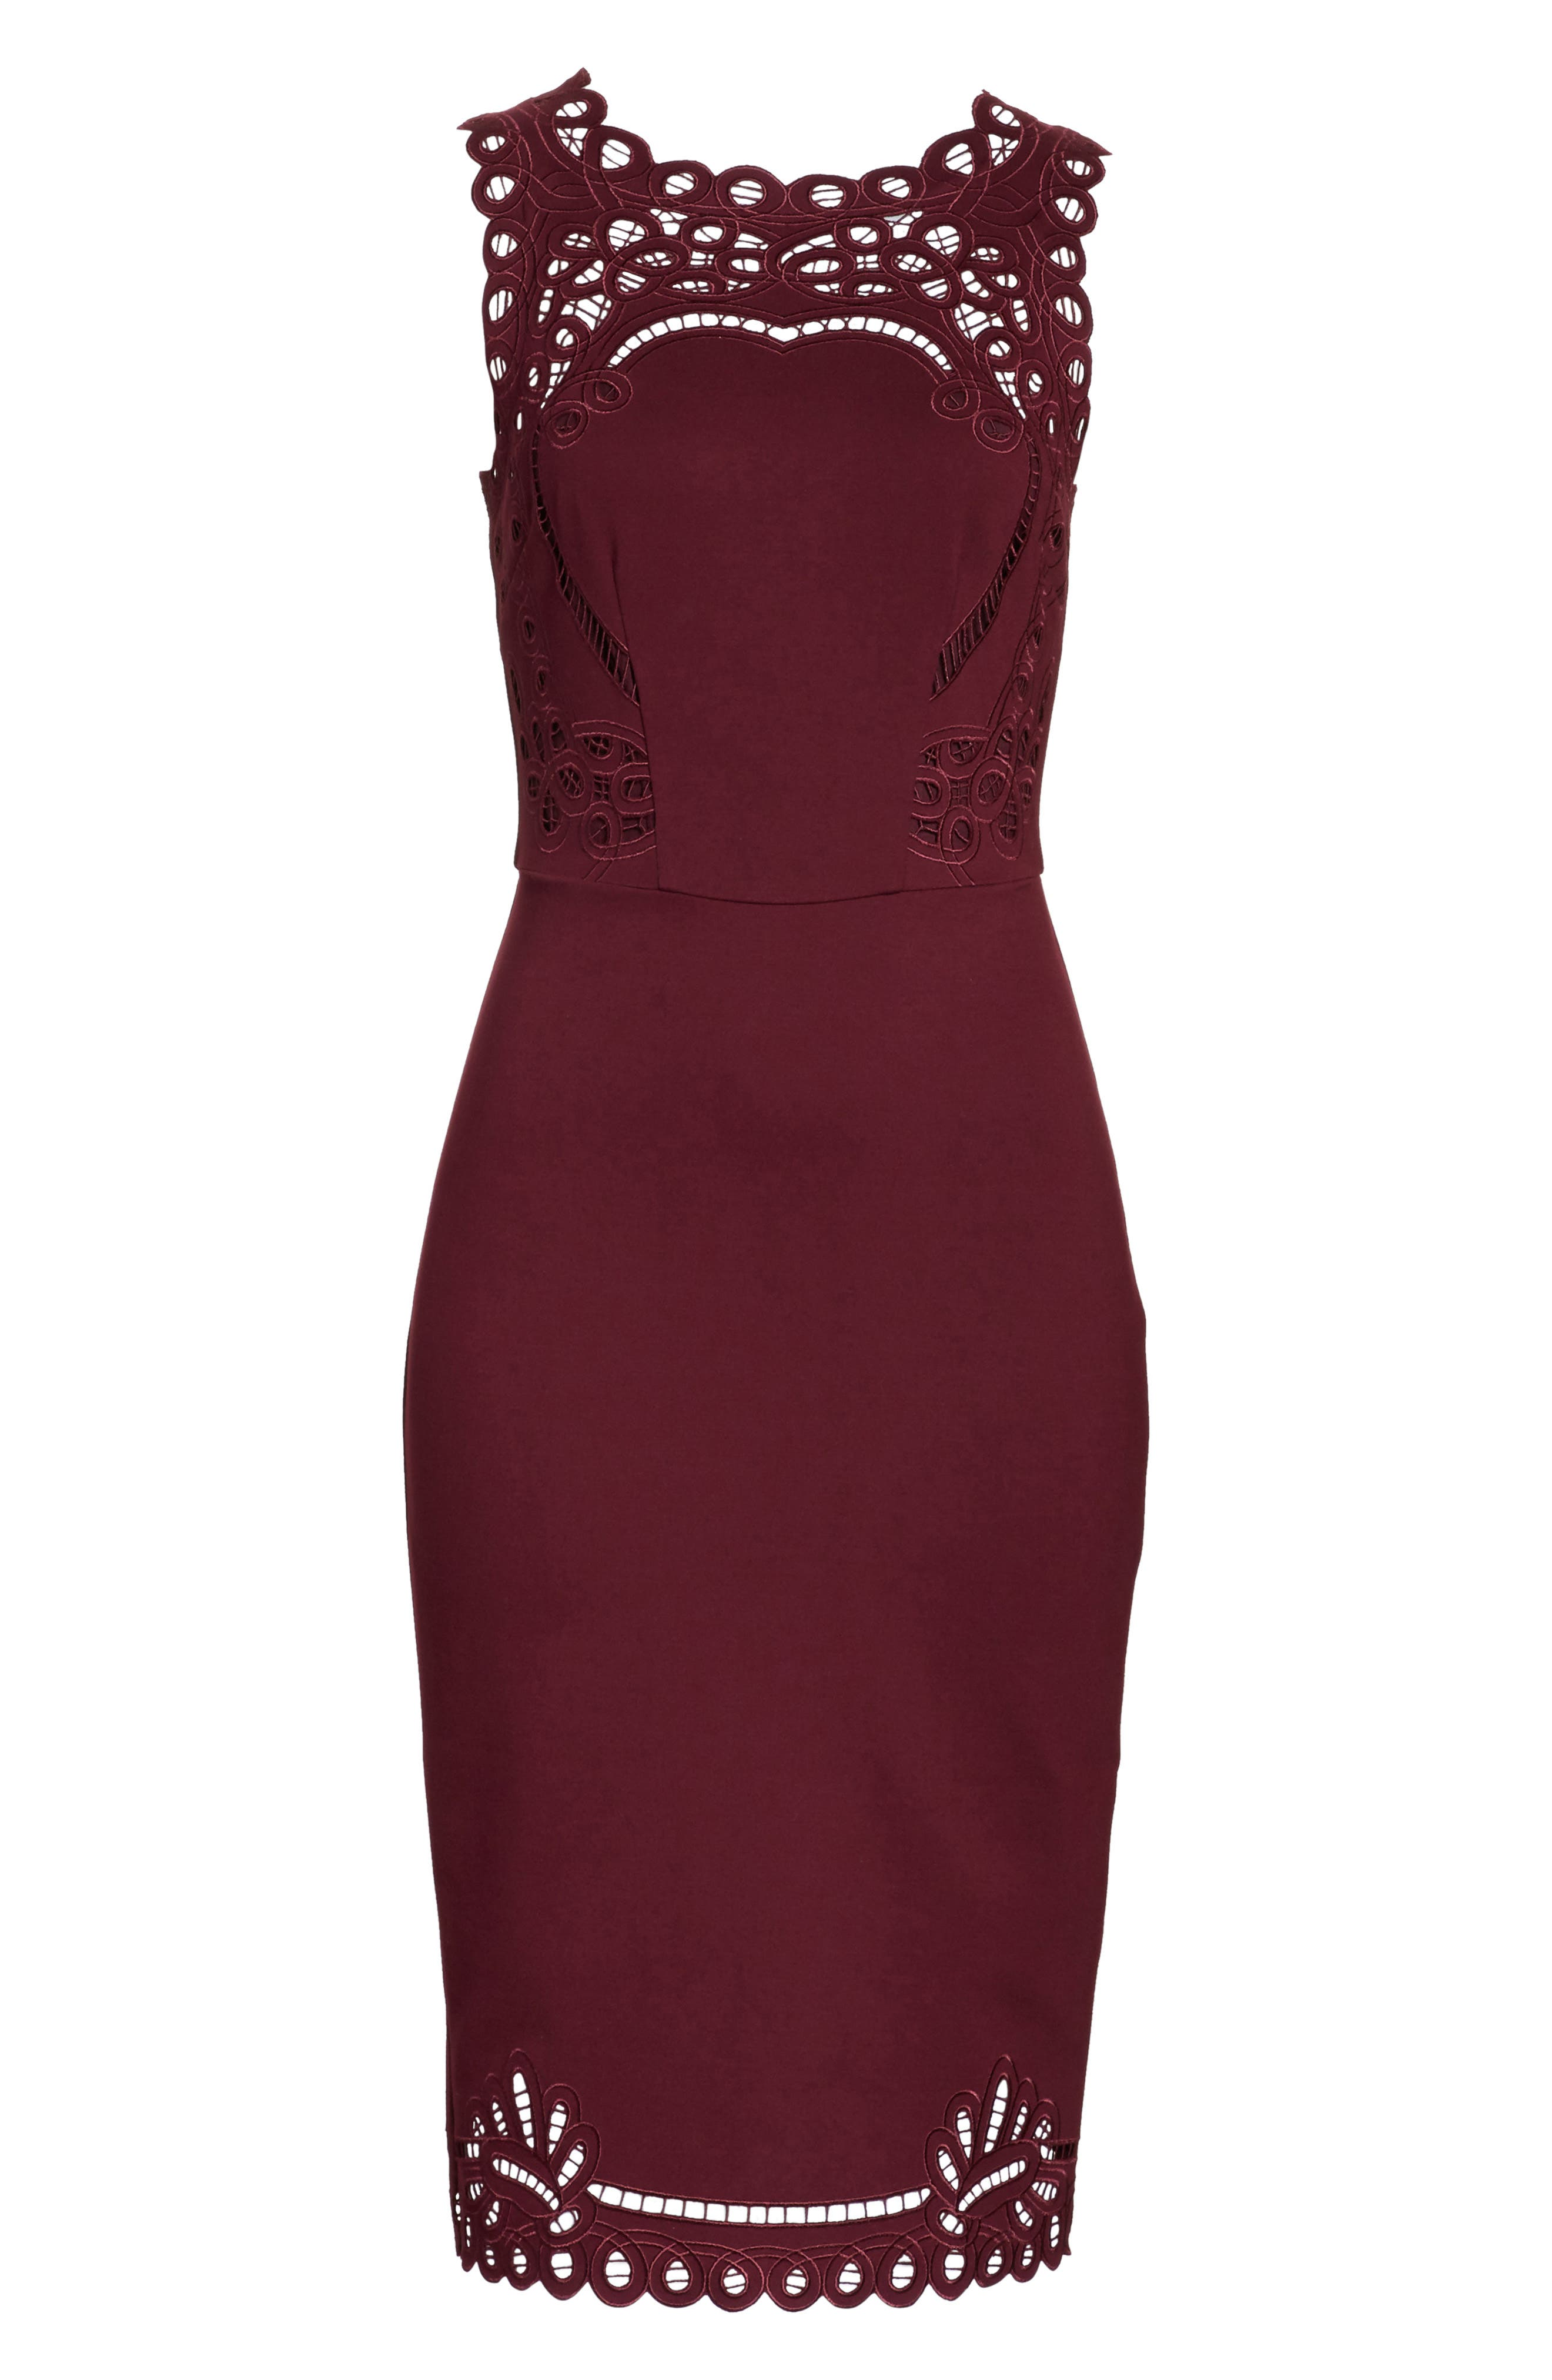 Verita Cutout Yoke Sheath Dress,                             Alternate thumbnail 6, color,                             930